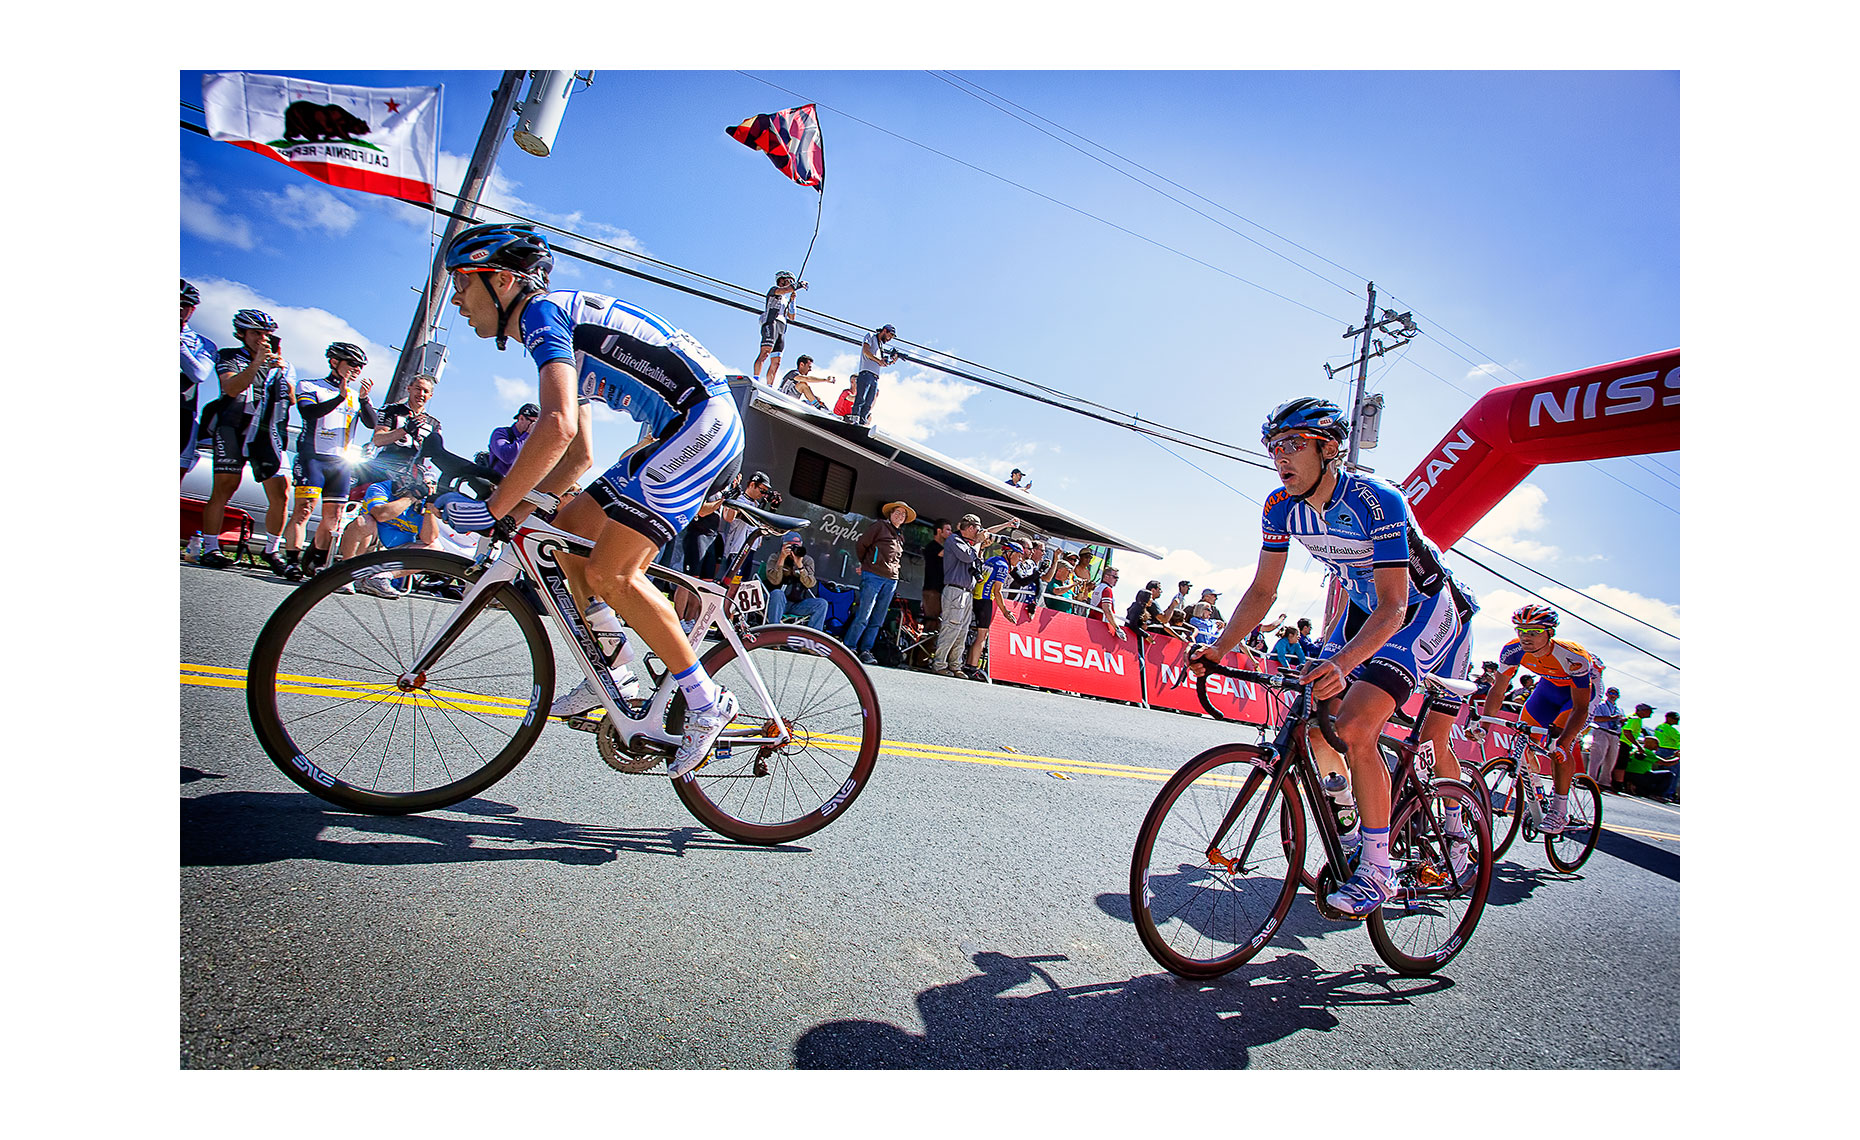 Tour of California | Cycling Photo